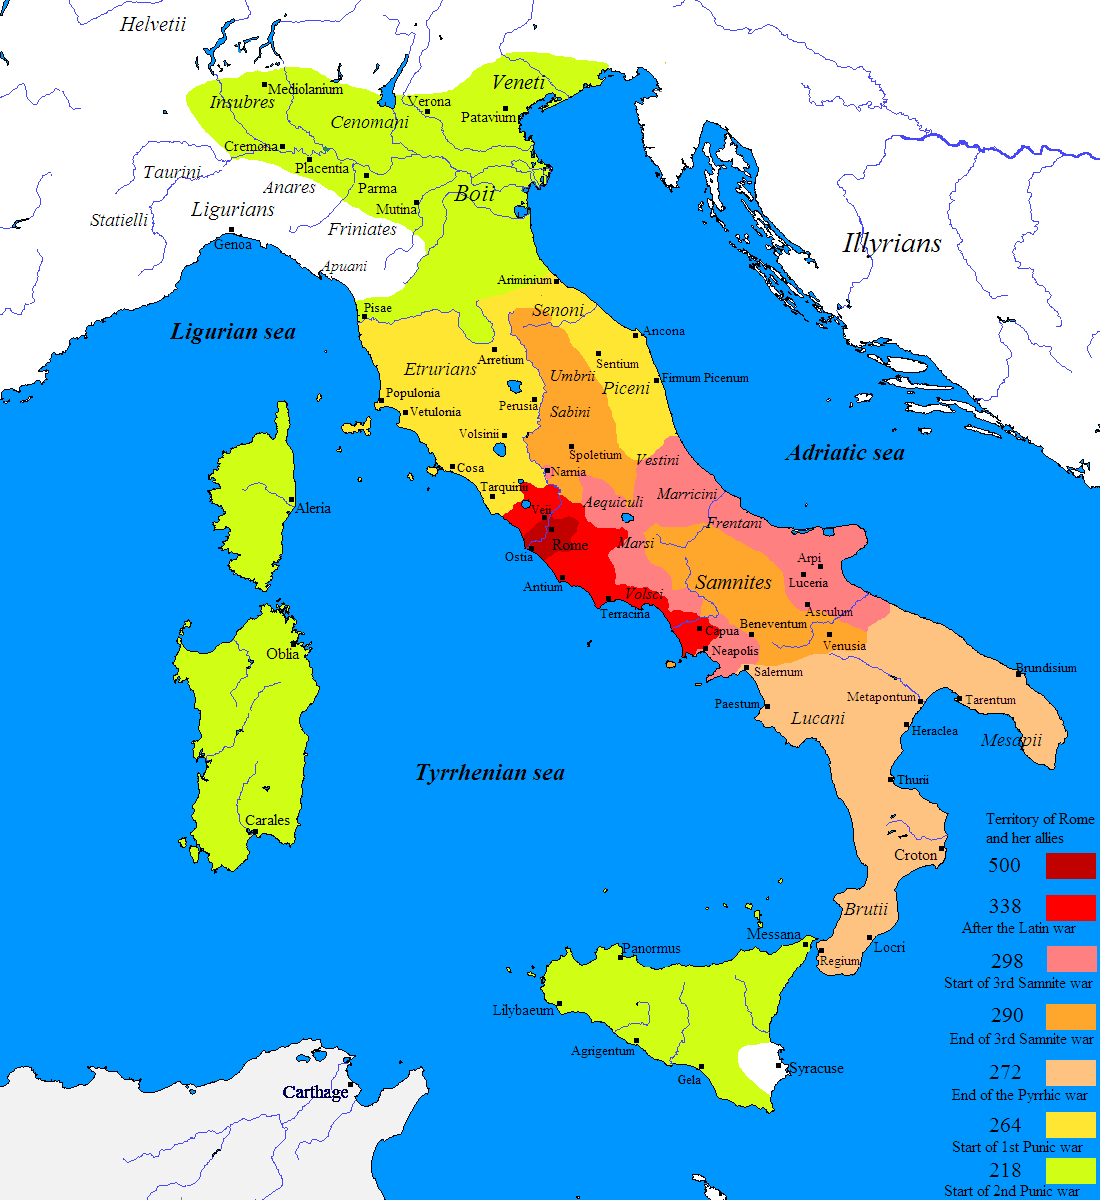 Map showing the expansion of Rome   Dark Red: 500 BCE Red: 338 BCE Pink: 298 BCE Orange: 290 BCE Yellow: 264 BCE (start of First Punic War) Green: 218 BCE (start of Second Punic War)